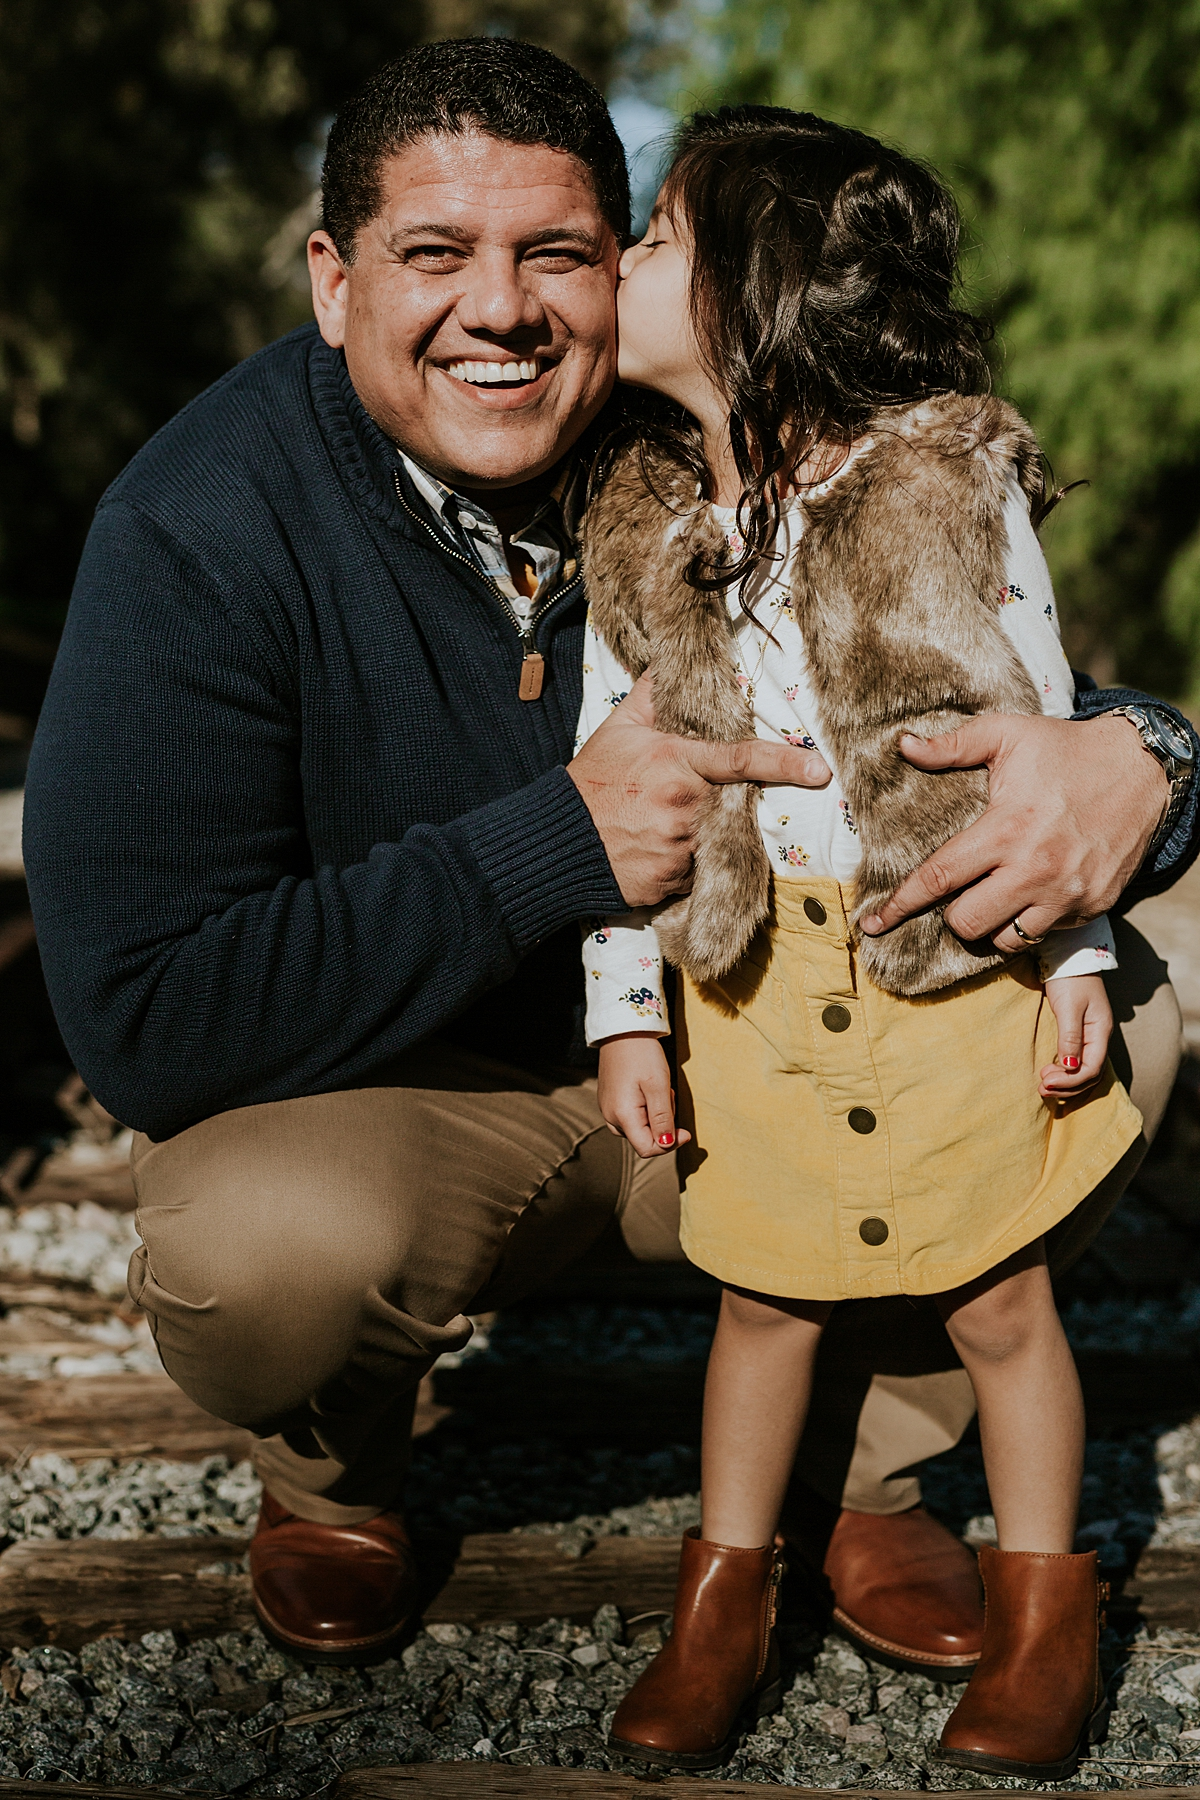 Orange County family photographer. Dad gets a kiss from his sweet black haired daughter while standing on abandoned railroad tracks during family photo shoot in orange county